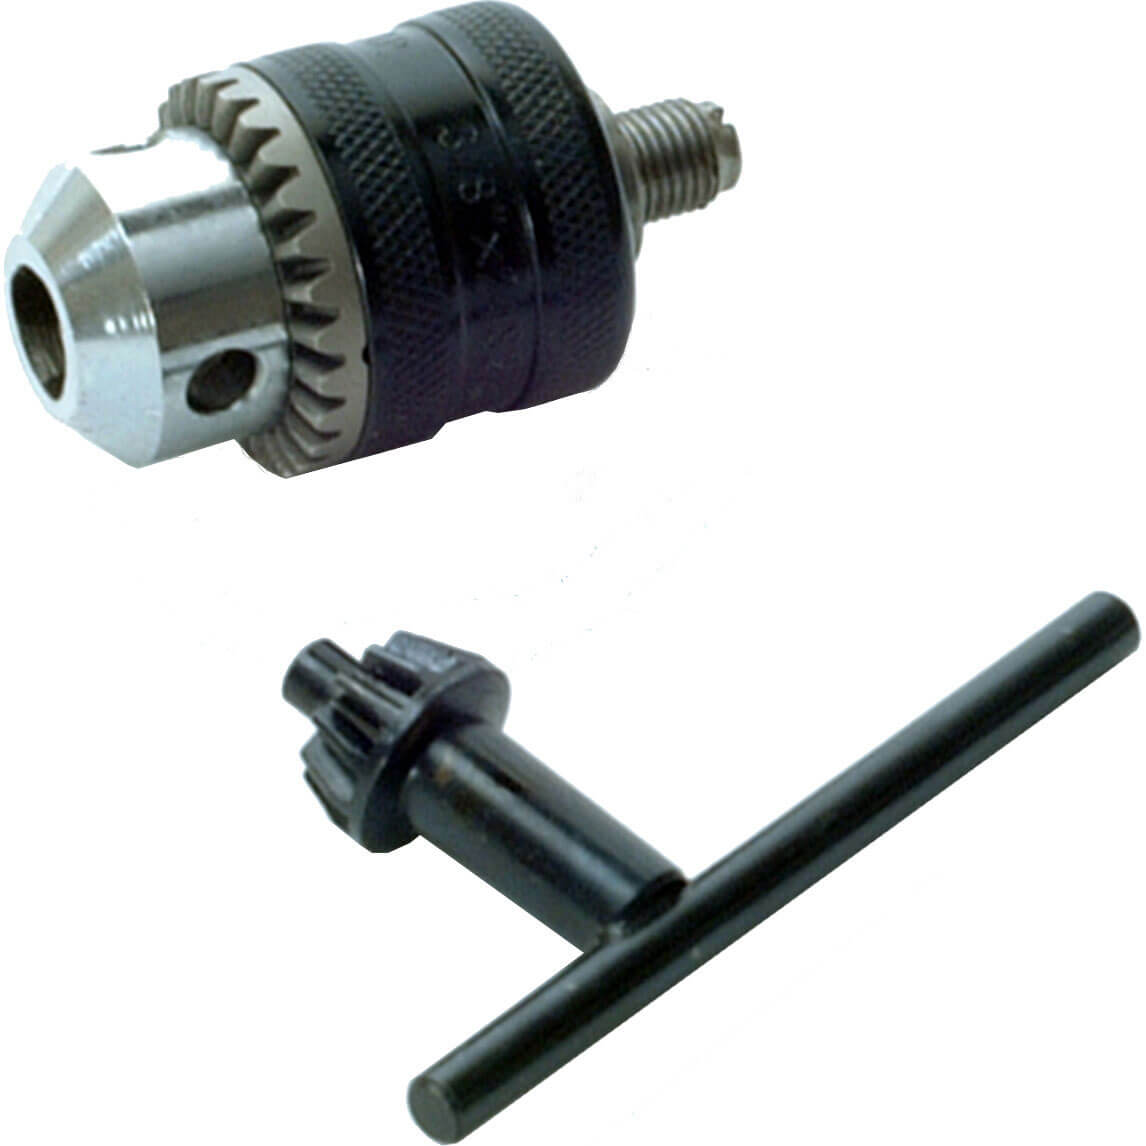 Image of Black & Decker X66300 Male Chuck And Key 10mm